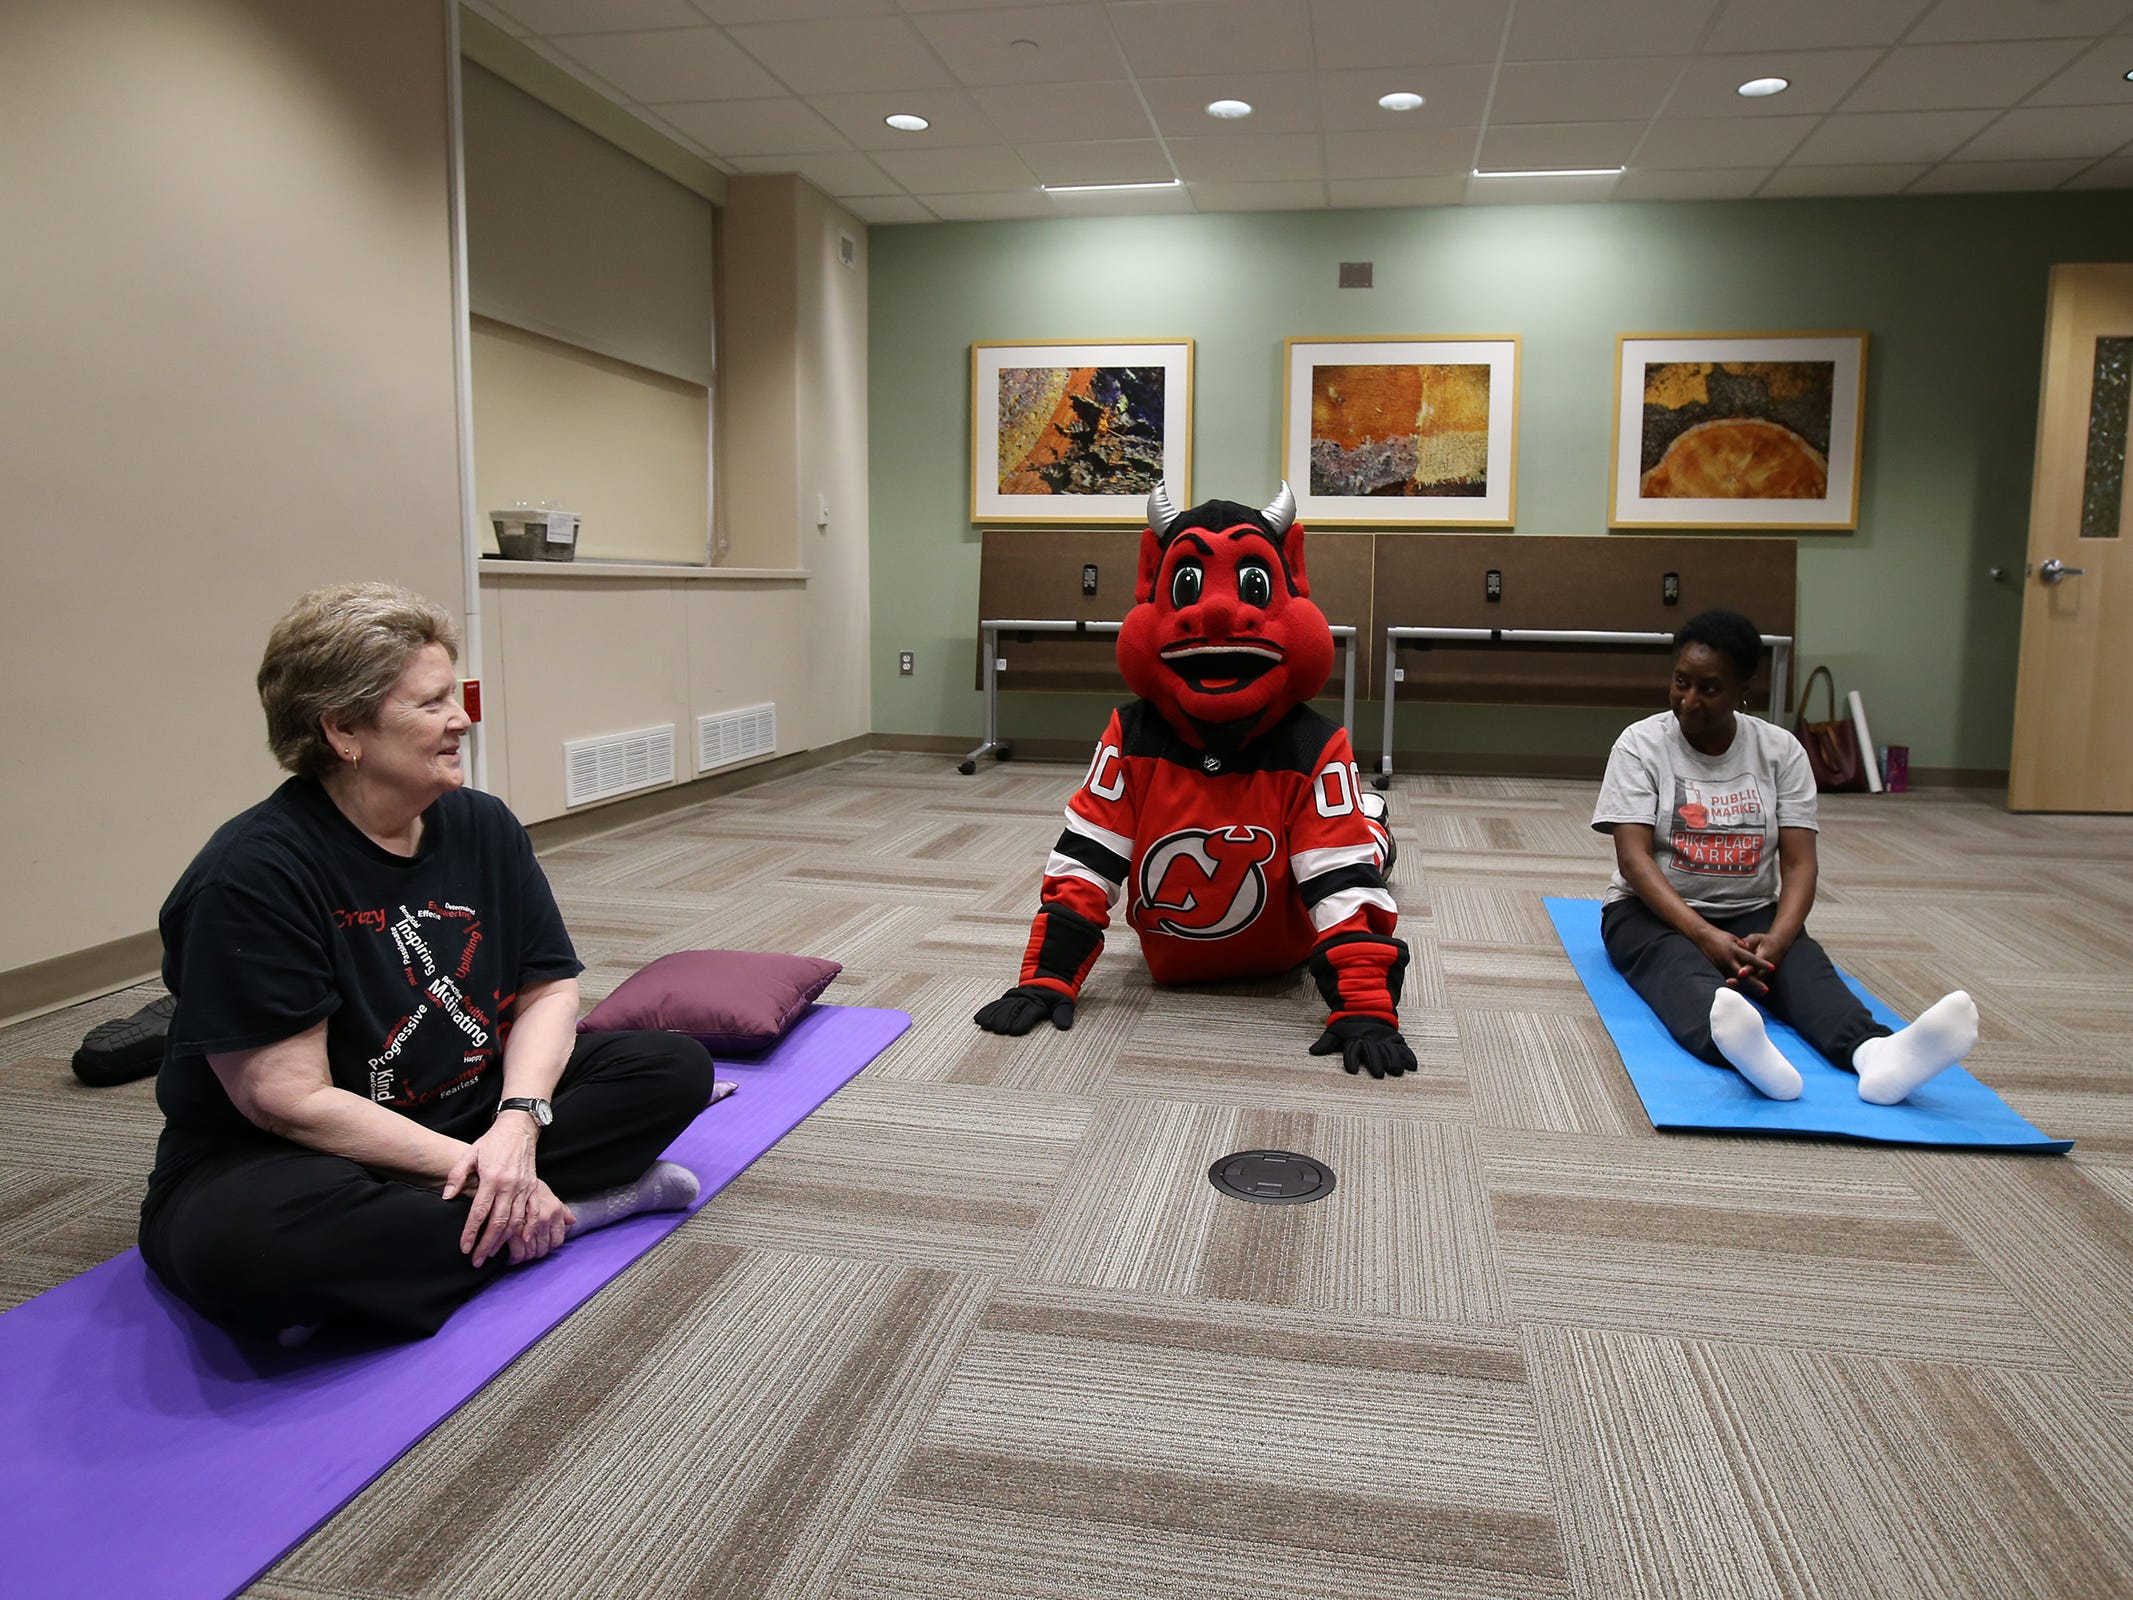 The New Jersey Devils' mascot visits Rachel Halfant of Toms River and Barbara Brown of Lakewood in their meditation class during a visit to the Monmouth Medical Center Southern Campus in Lakewood, NJ Monday, December 17, 2018. During his visit, he also loaded donated toys into a police car with members of the Lakewood PBA and Lakewood Police Department.